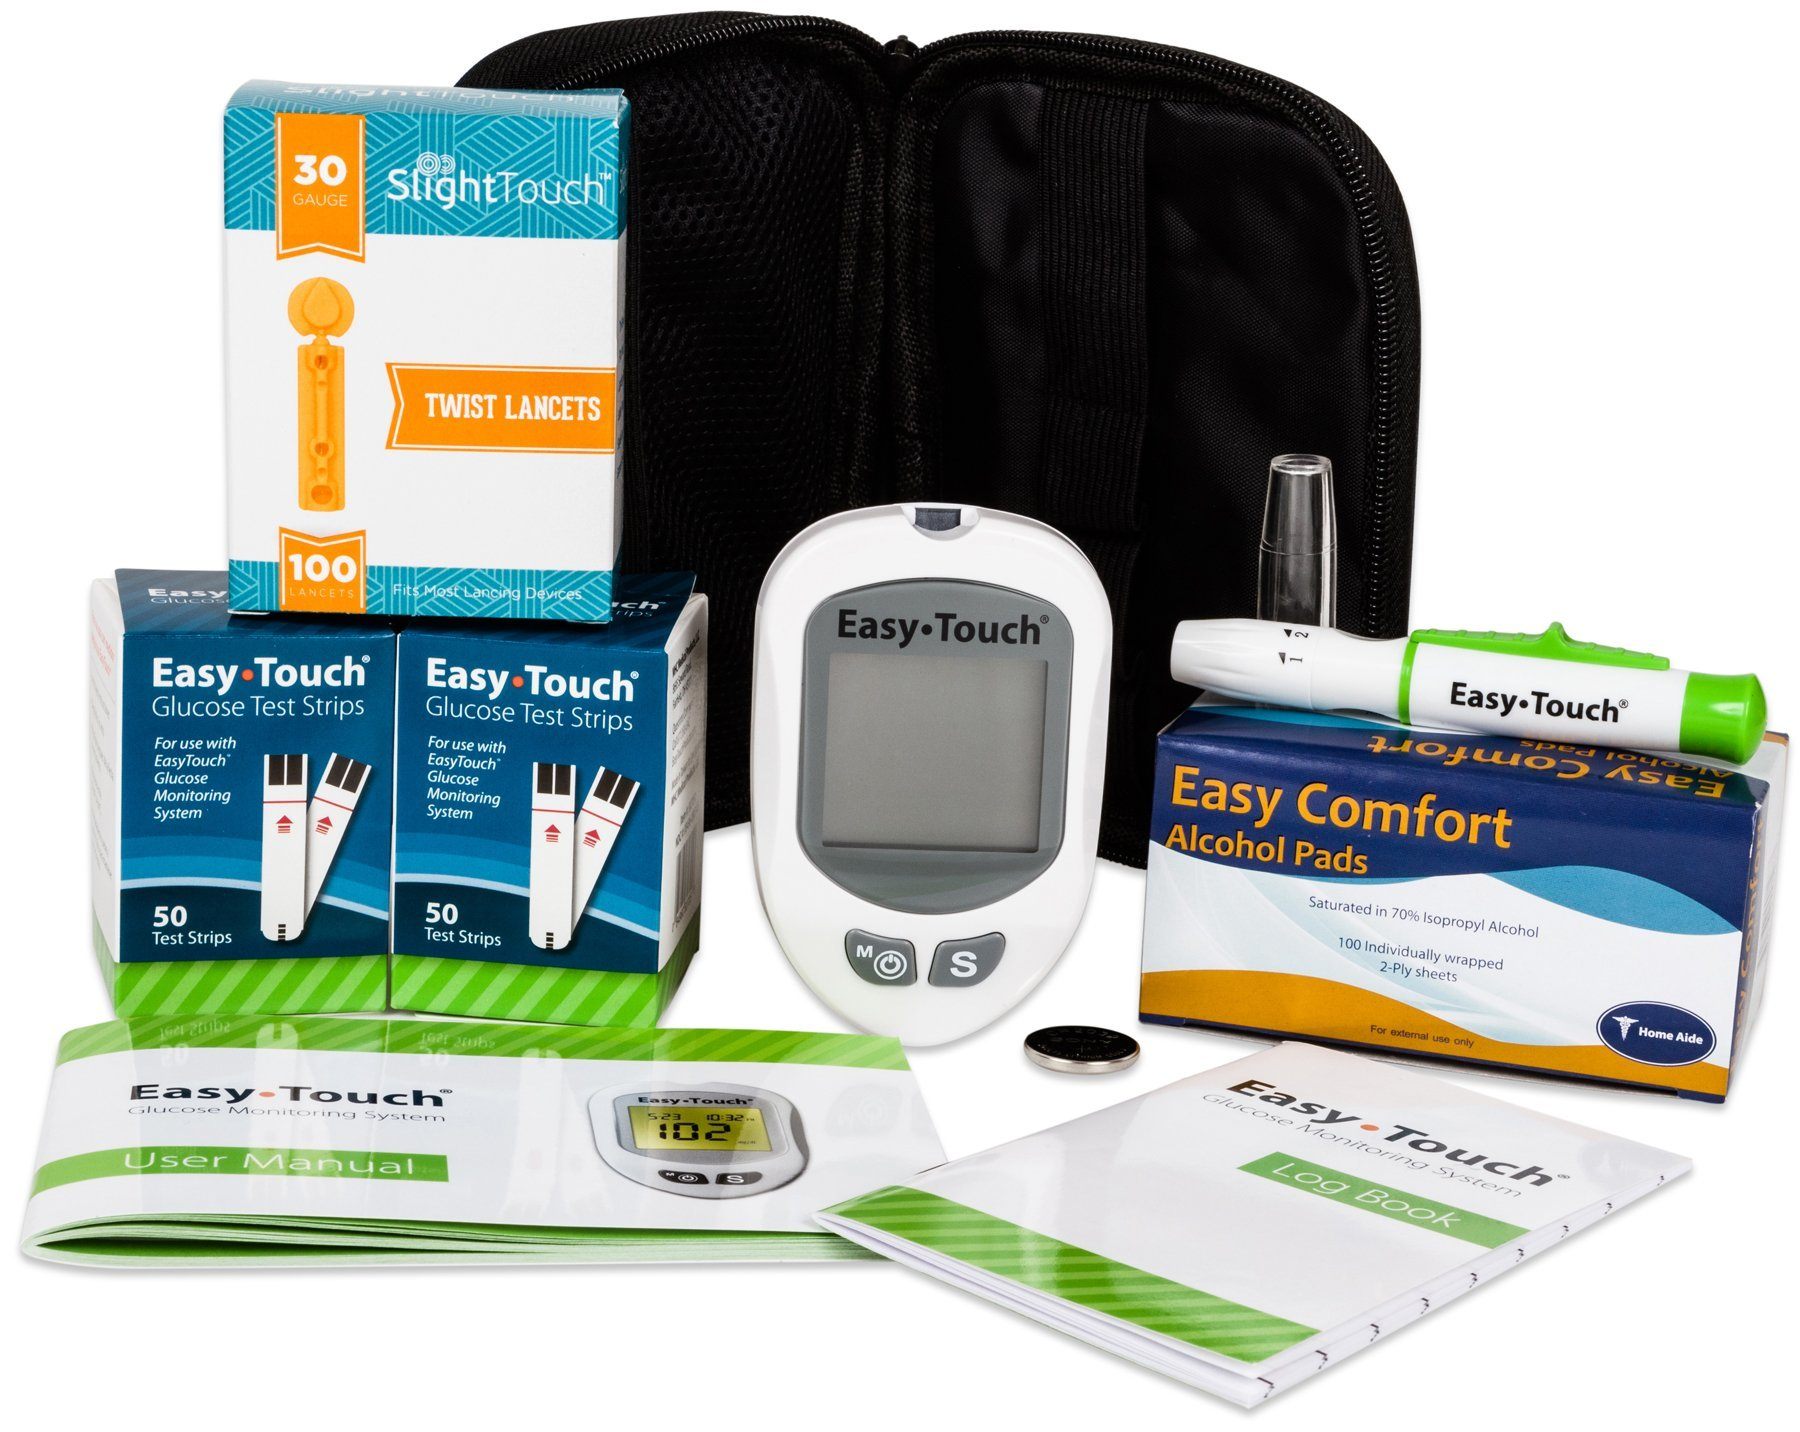 Easy Touch Diabetes Testing Kit - Easy Touch Meter, 100 Easy Touch Blood Glucose Test Strips, 100 Slight Touch Lancets 30g, Lancing Device and 100 Slight Touch Alcohol Pads